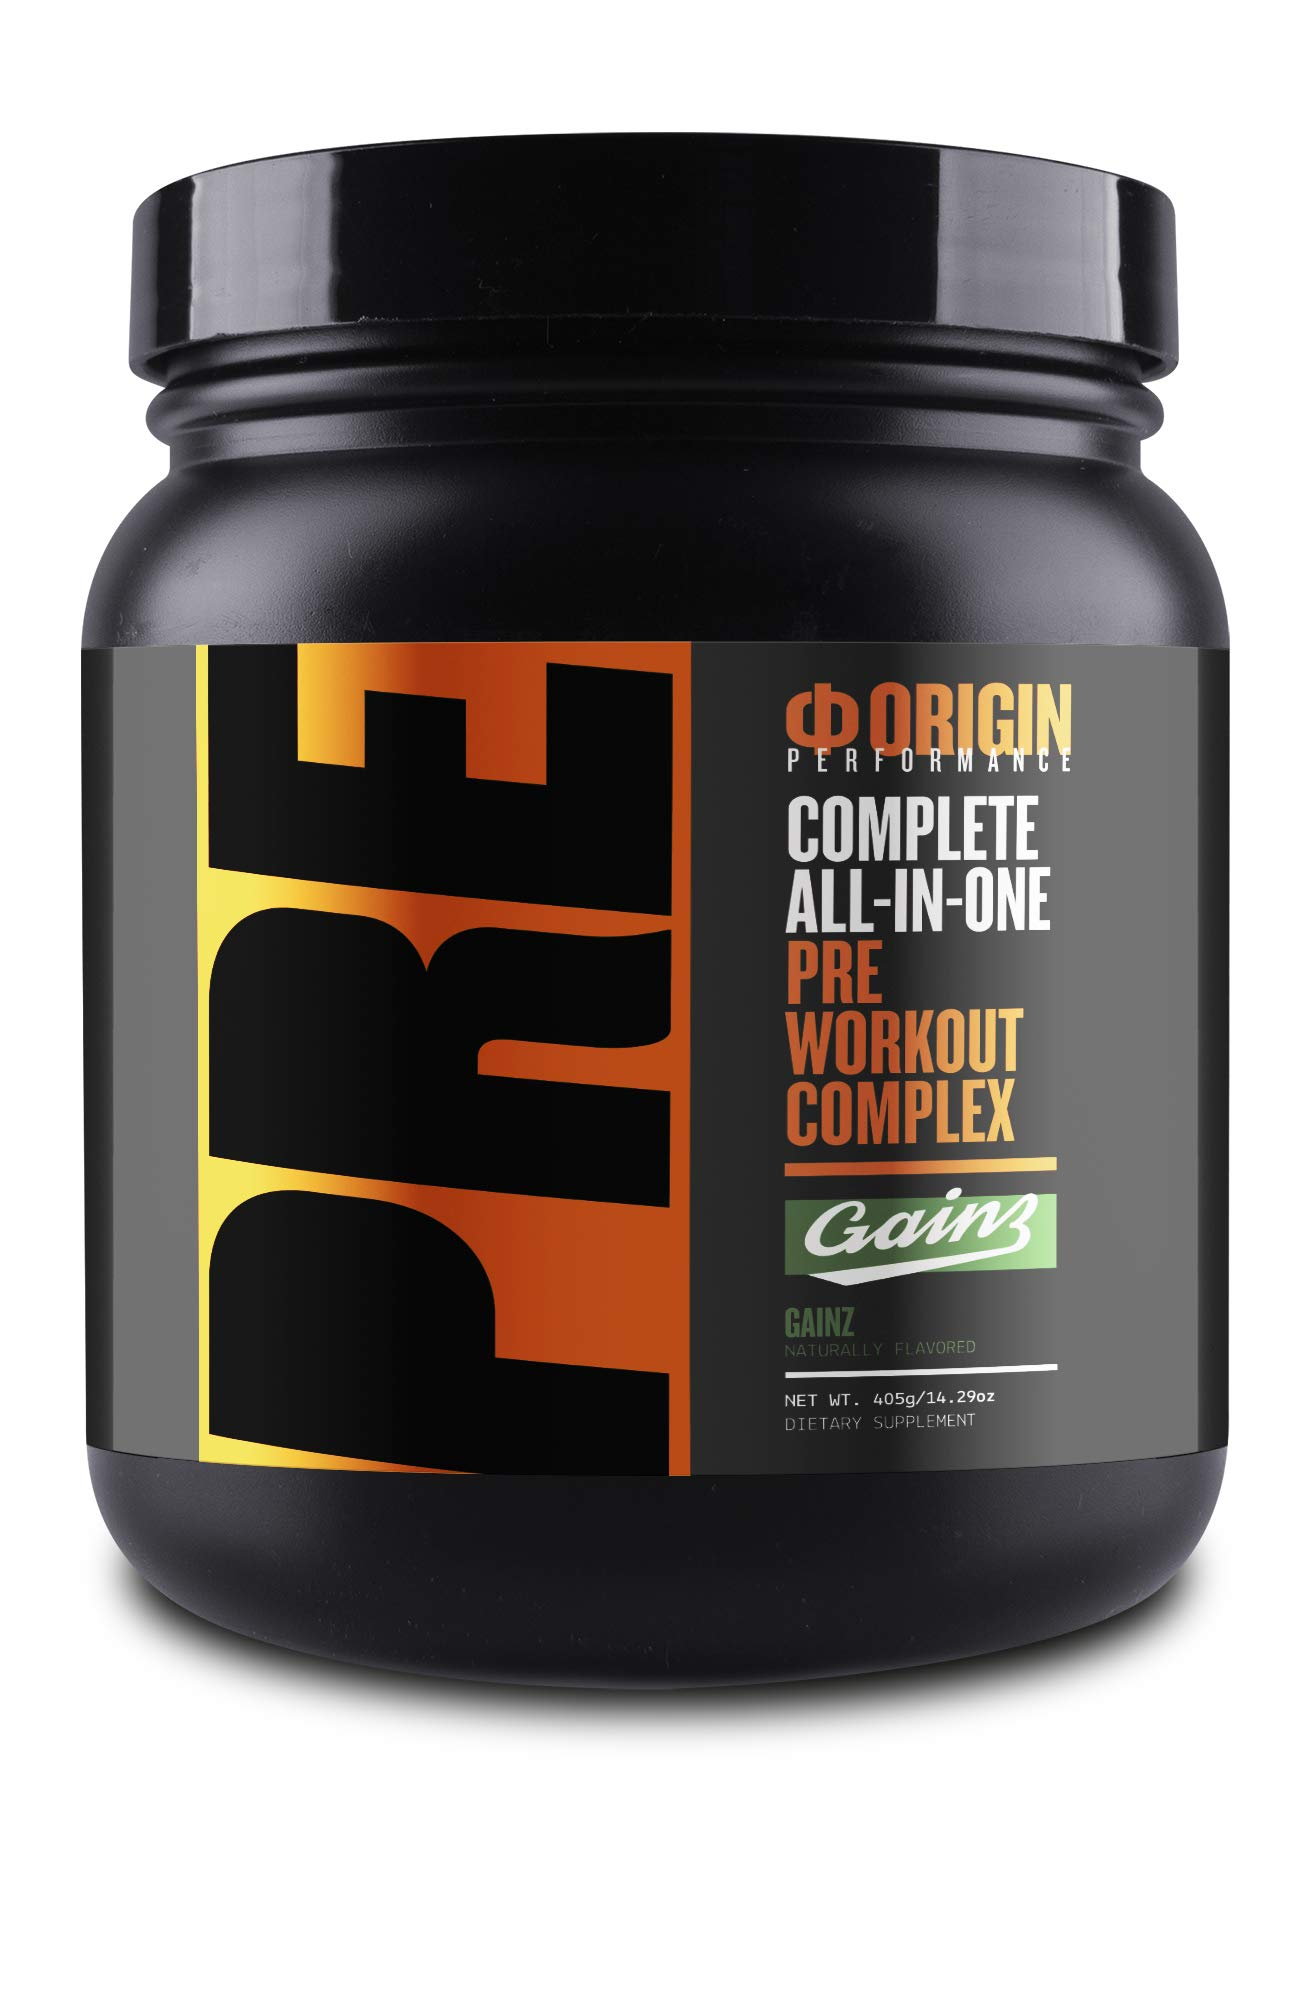 Origin Uncompromised Pre-Workout (Gainz - Green Apple) - Complete All-in-One Pre Workout Complex